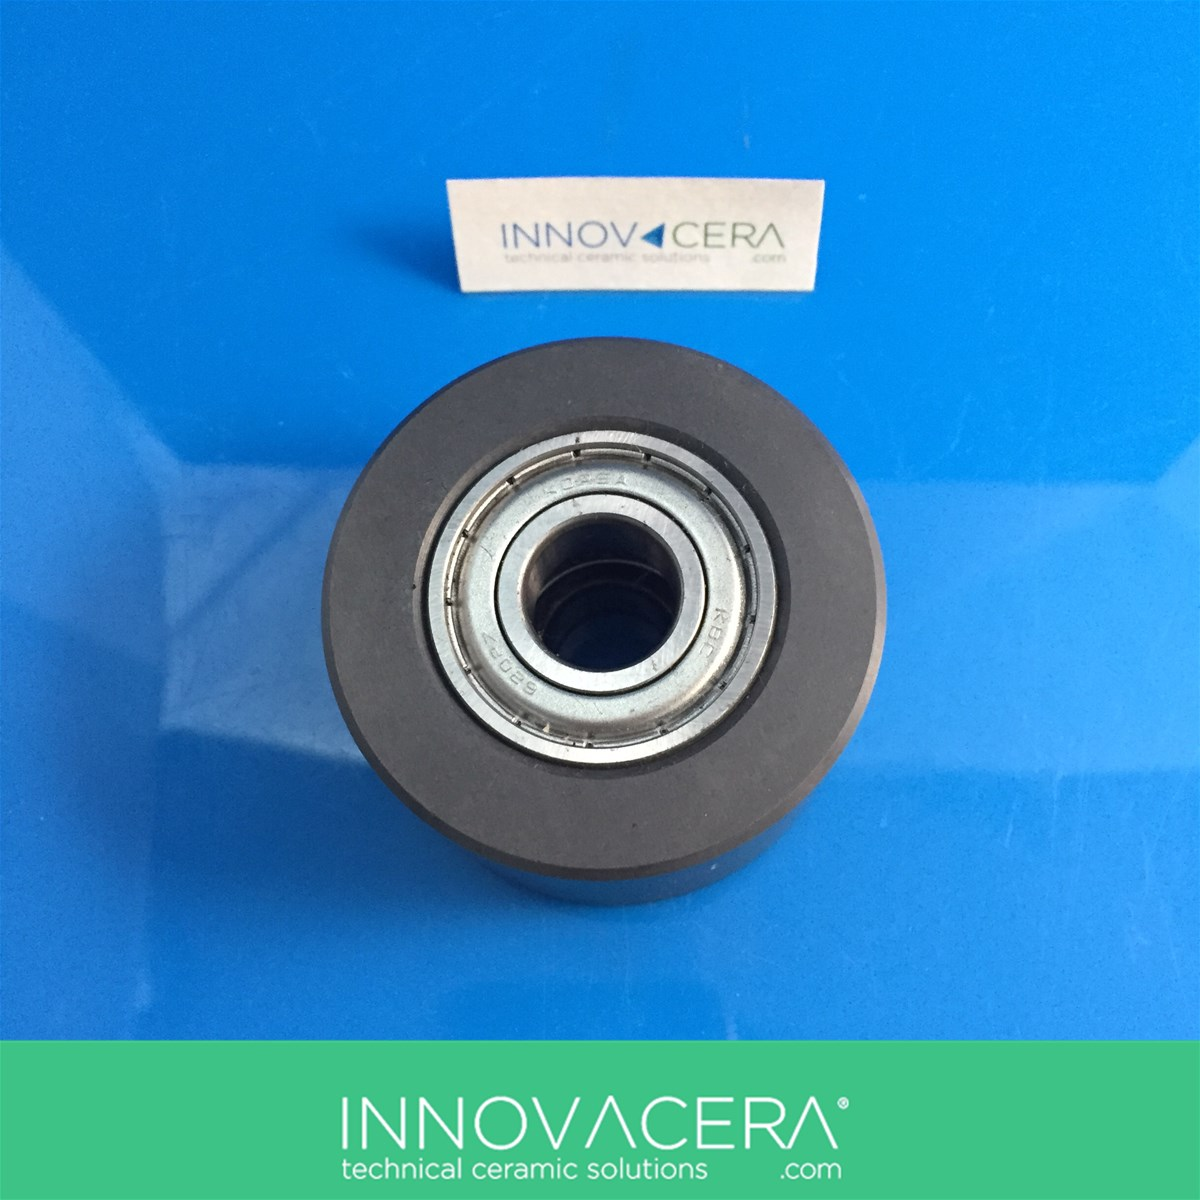 High-Speed Ceramic Bearing/Silicon Nitride Bearing For High Speed Motor/INNOVACERA